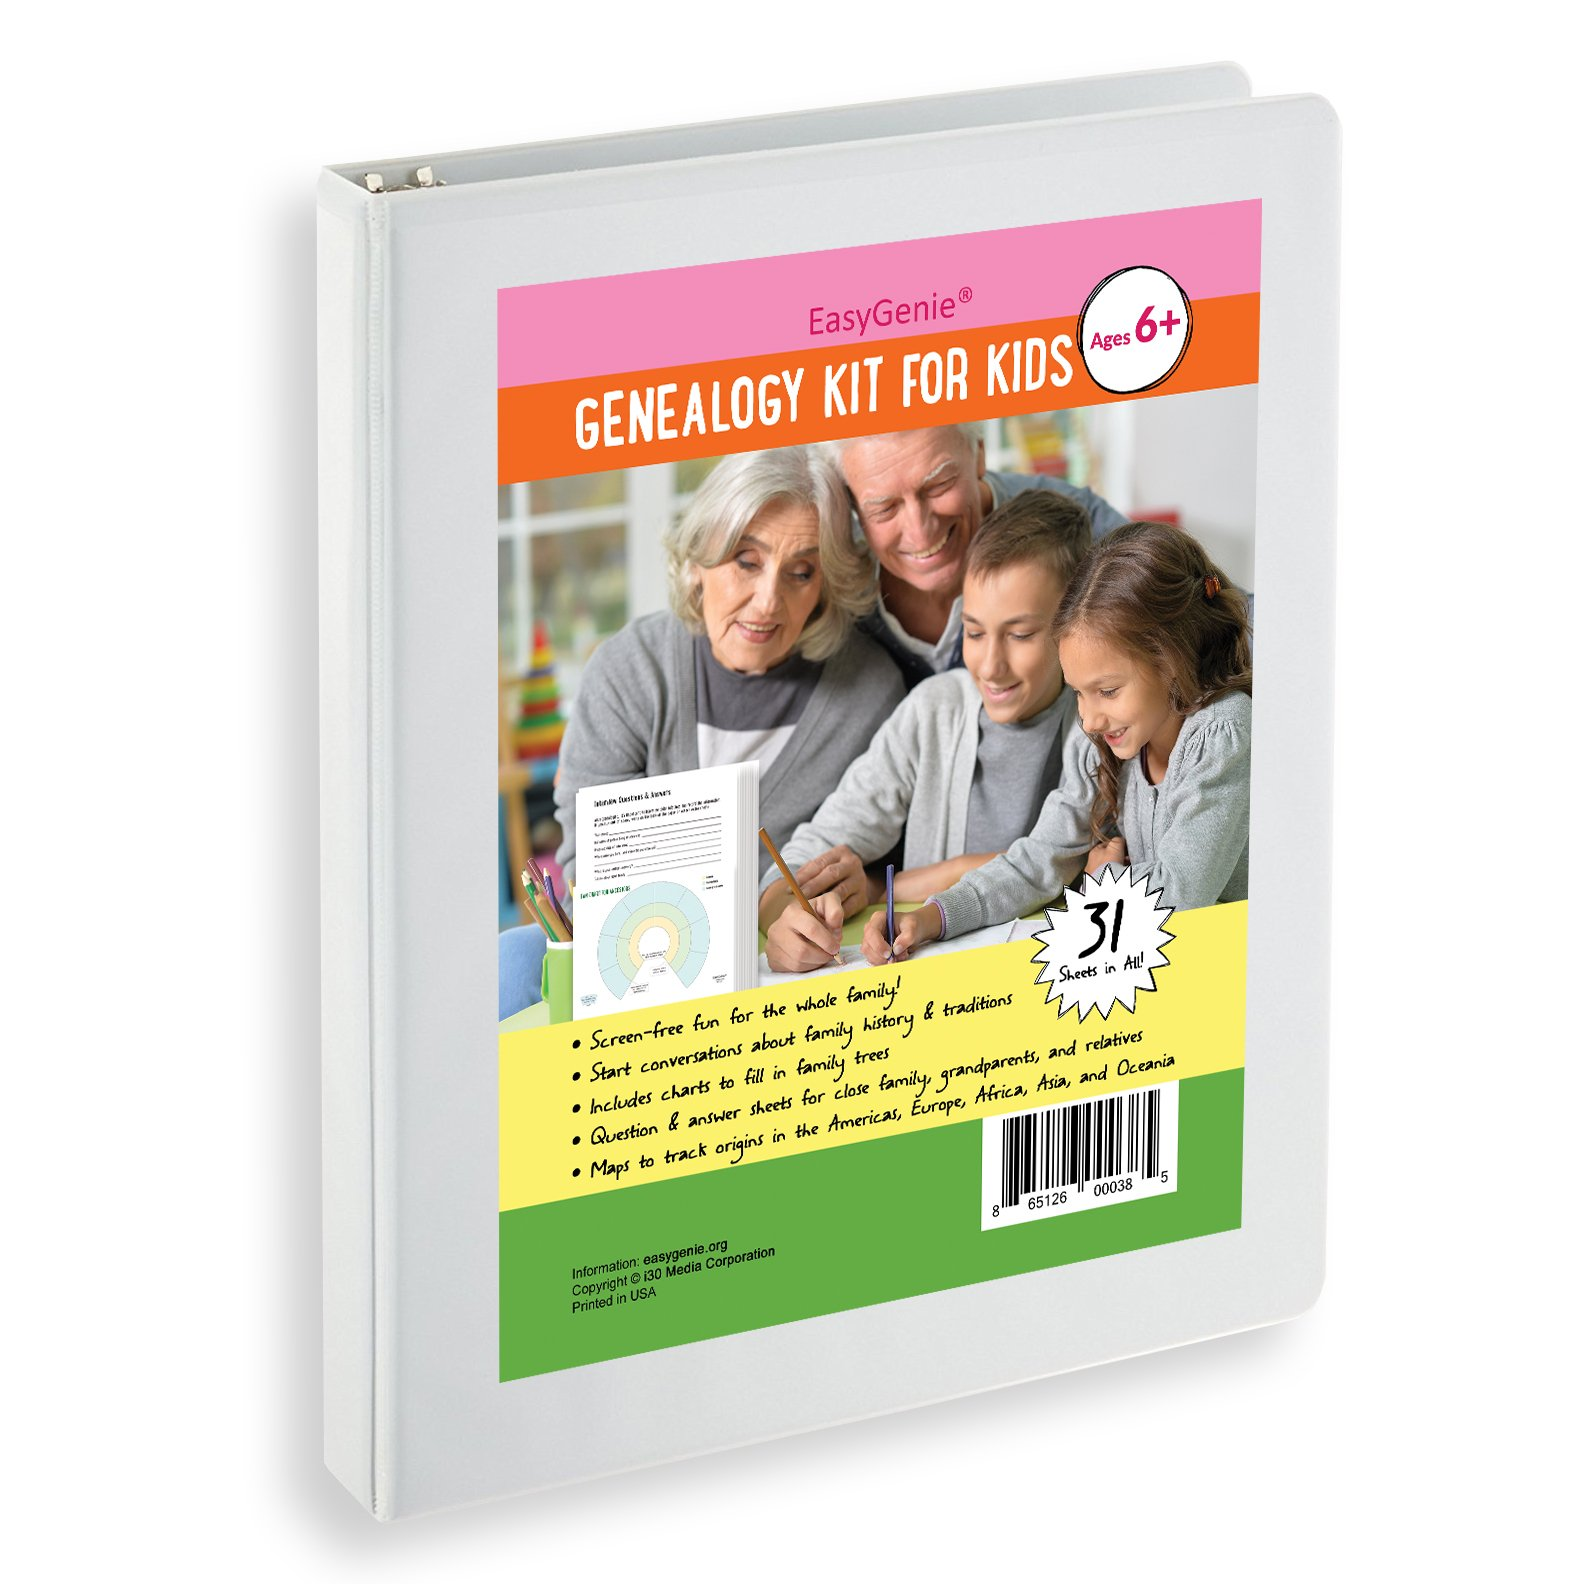 EasyGenie Genealogy Kit for Kids by (31 sheets)